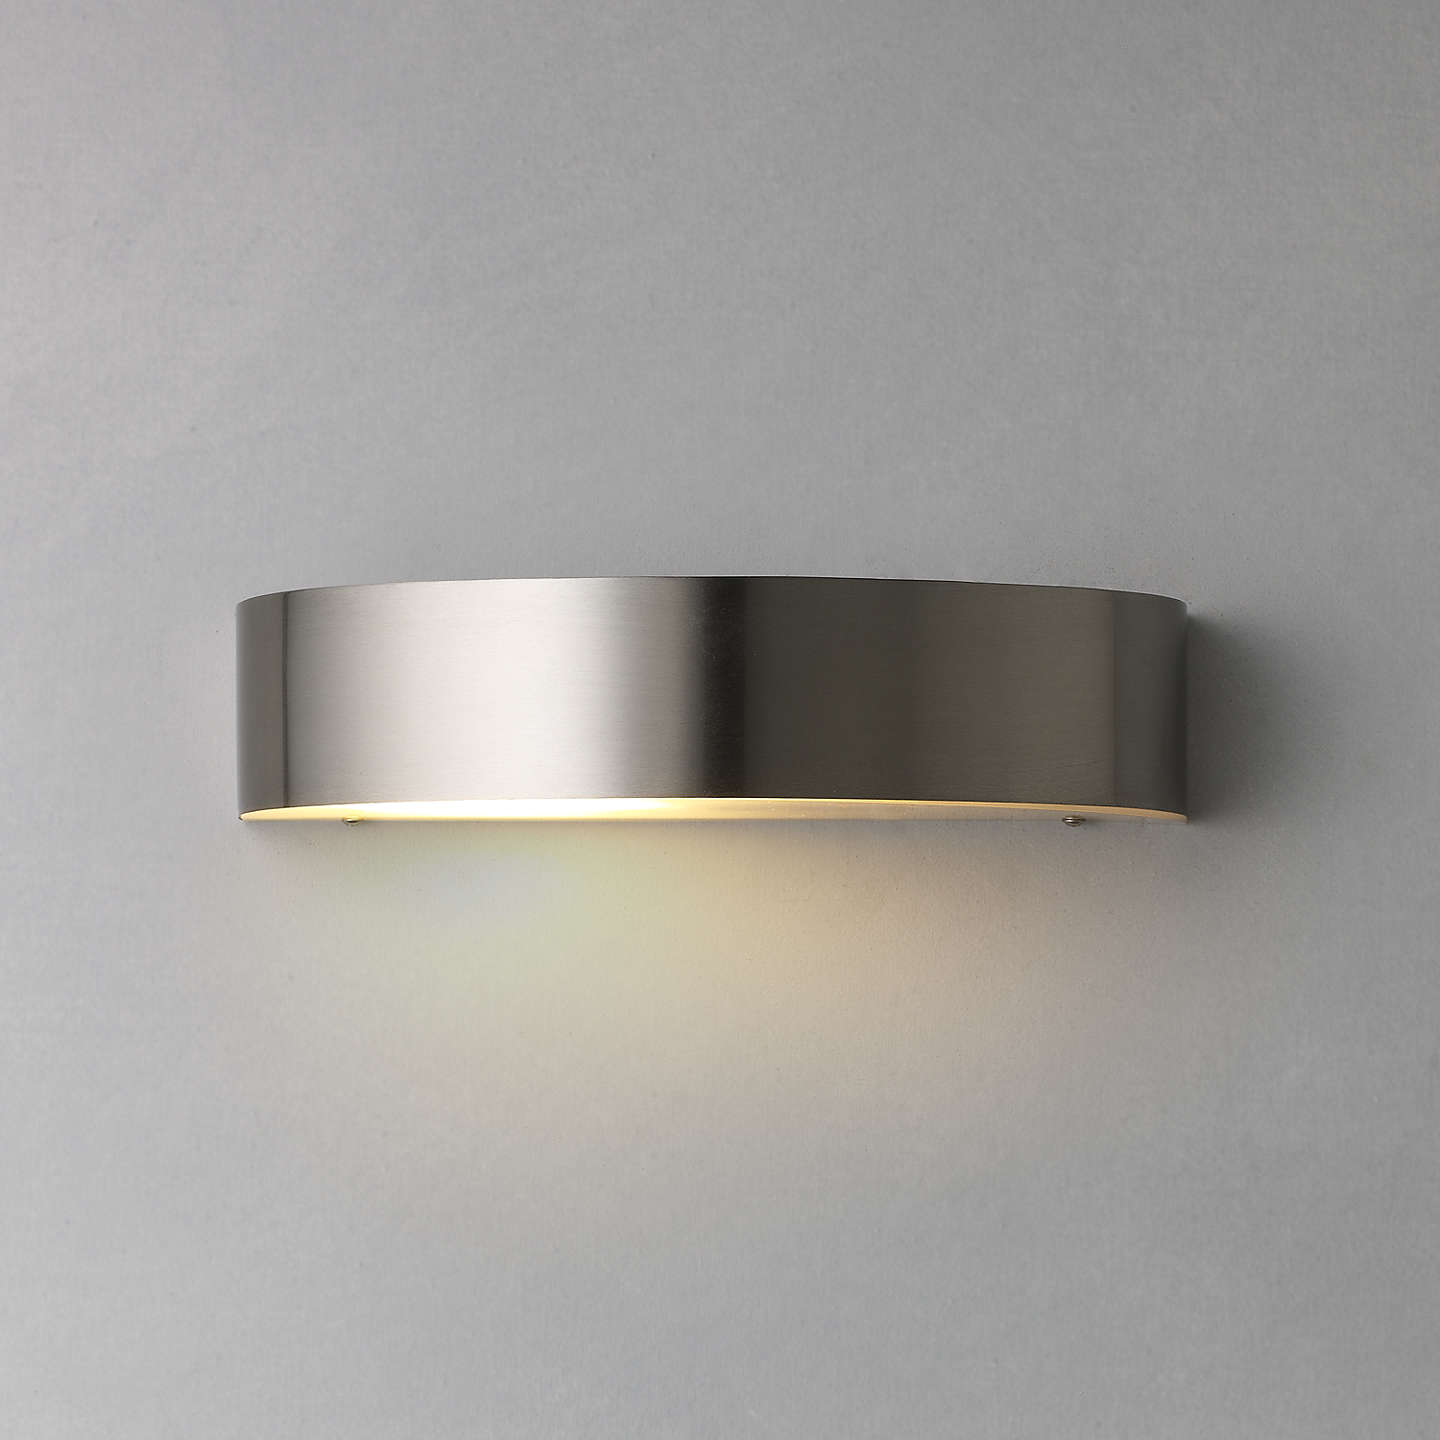 Outdoor Wall Lights John Lewis: Nordlux Arc Outdoor Wall Light, Stainless Steel At John Lewis